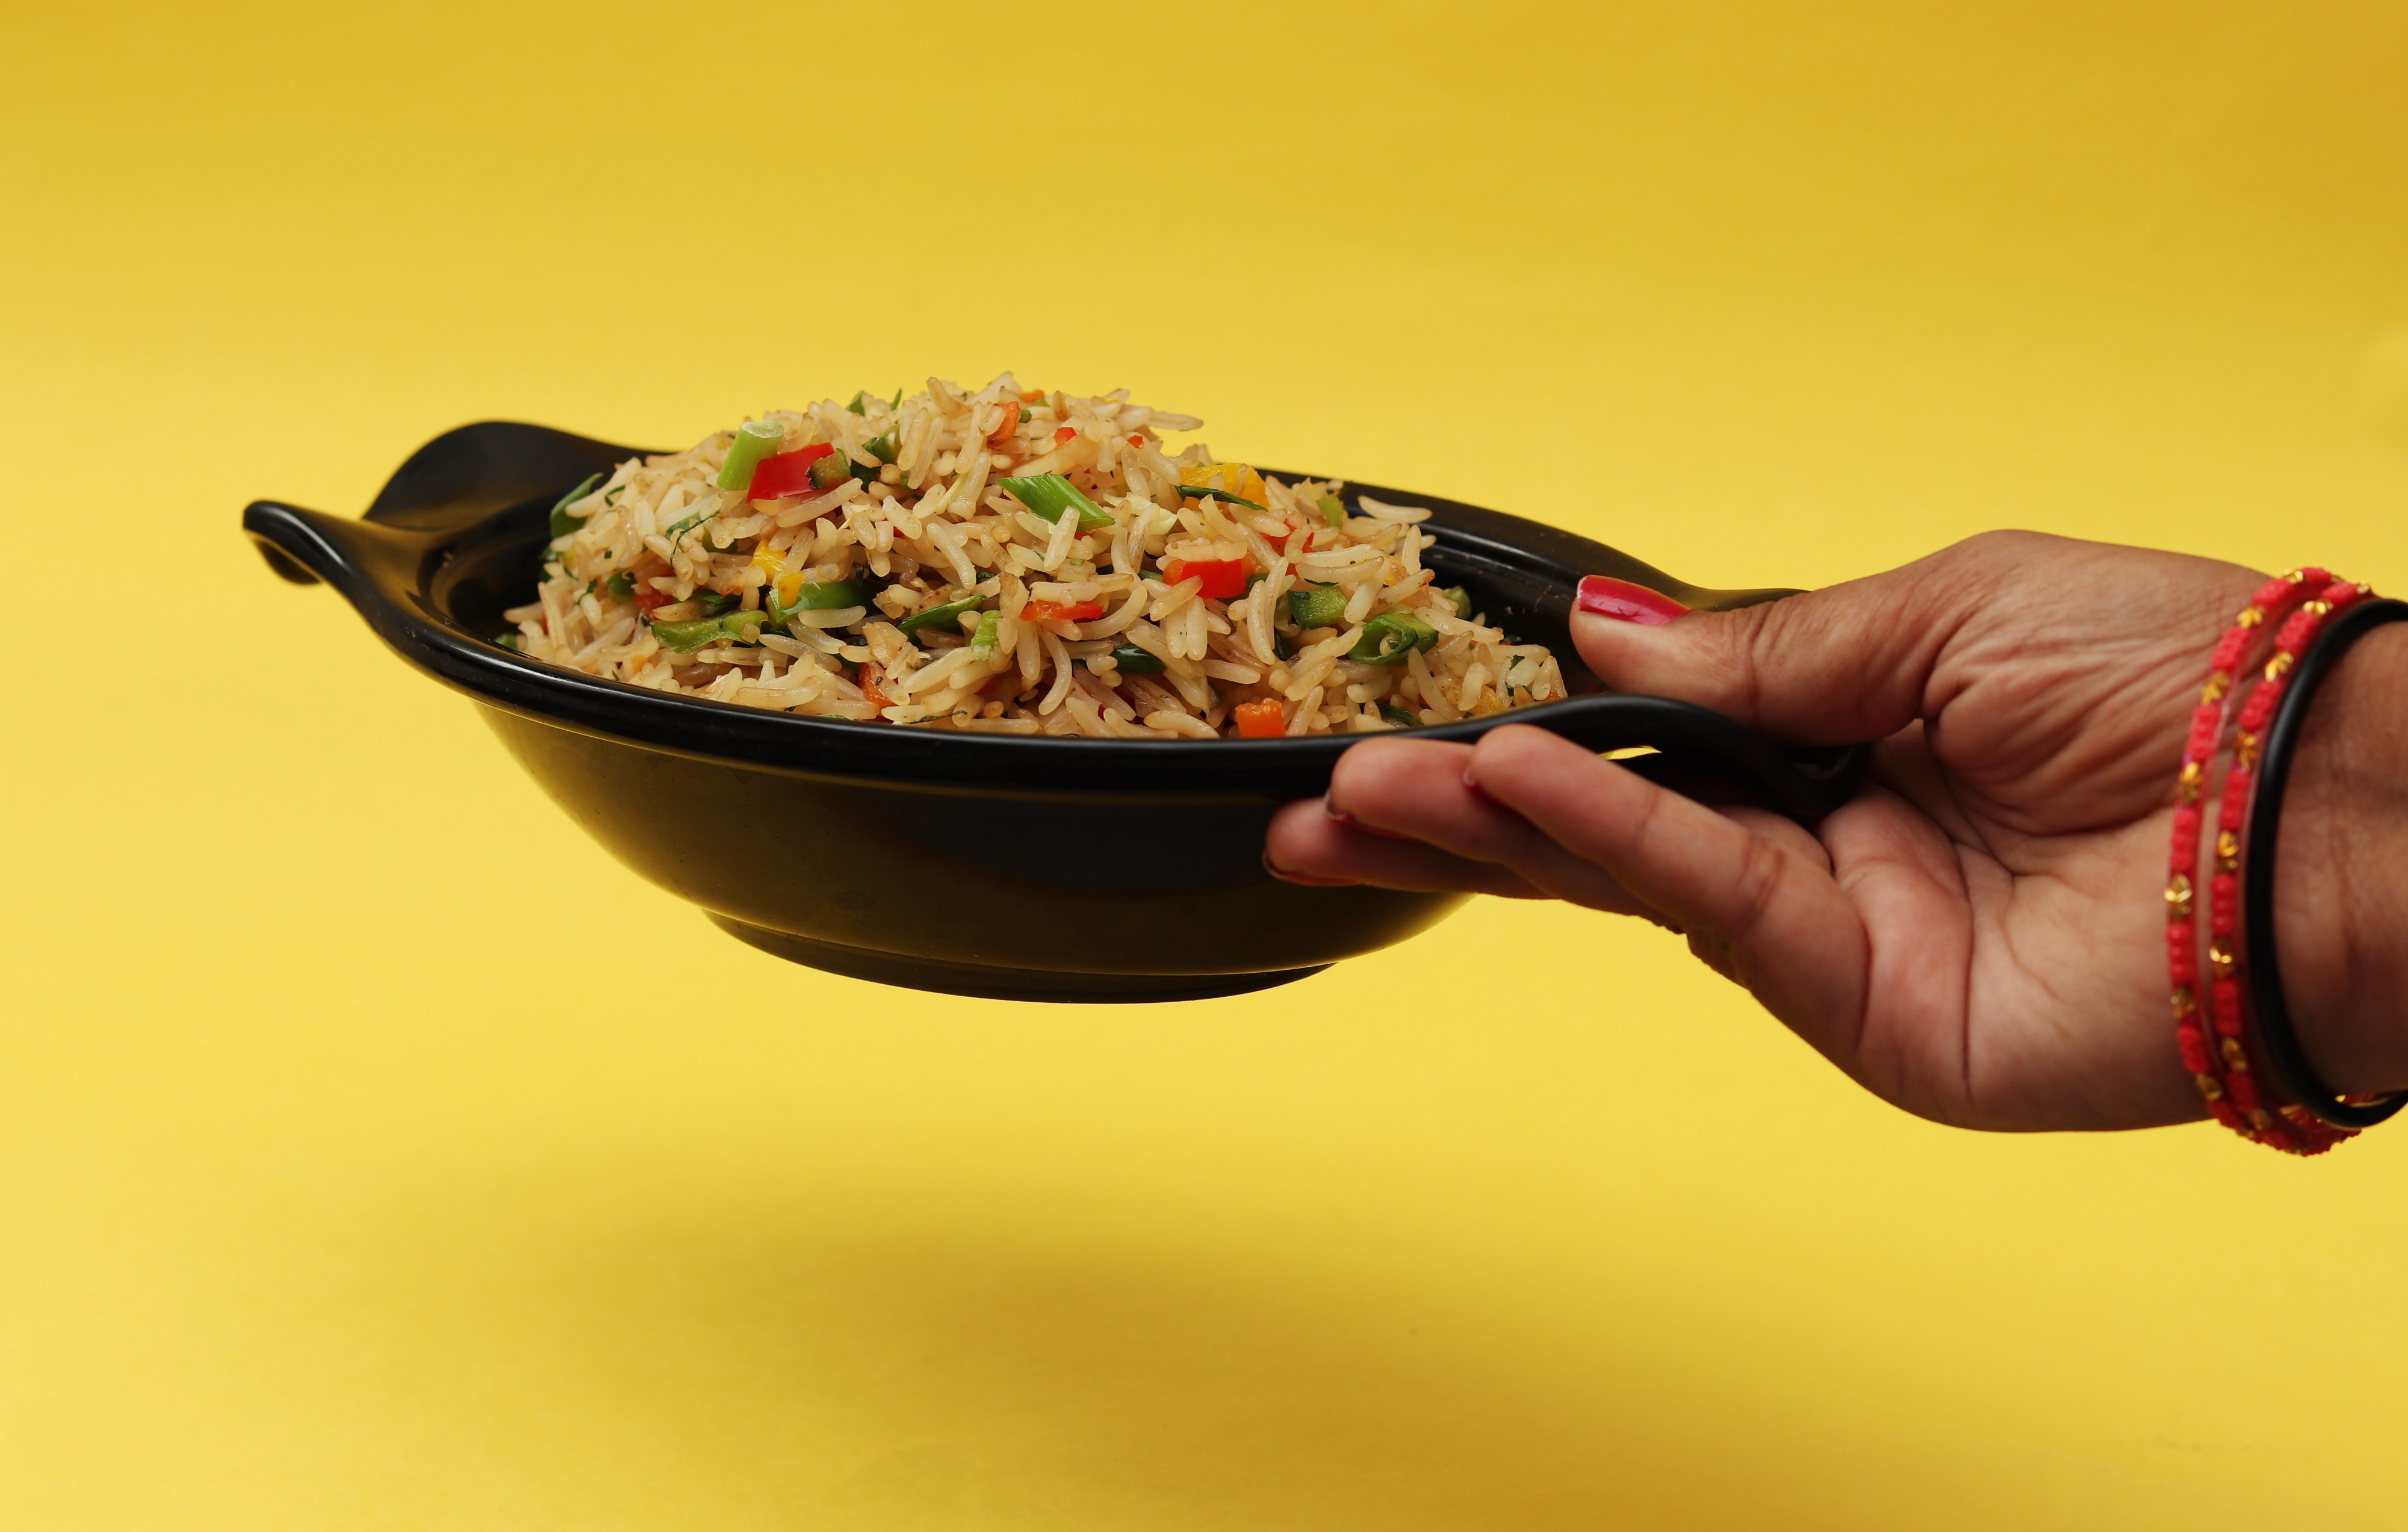 Woman's hand holding a bowl of fried rice